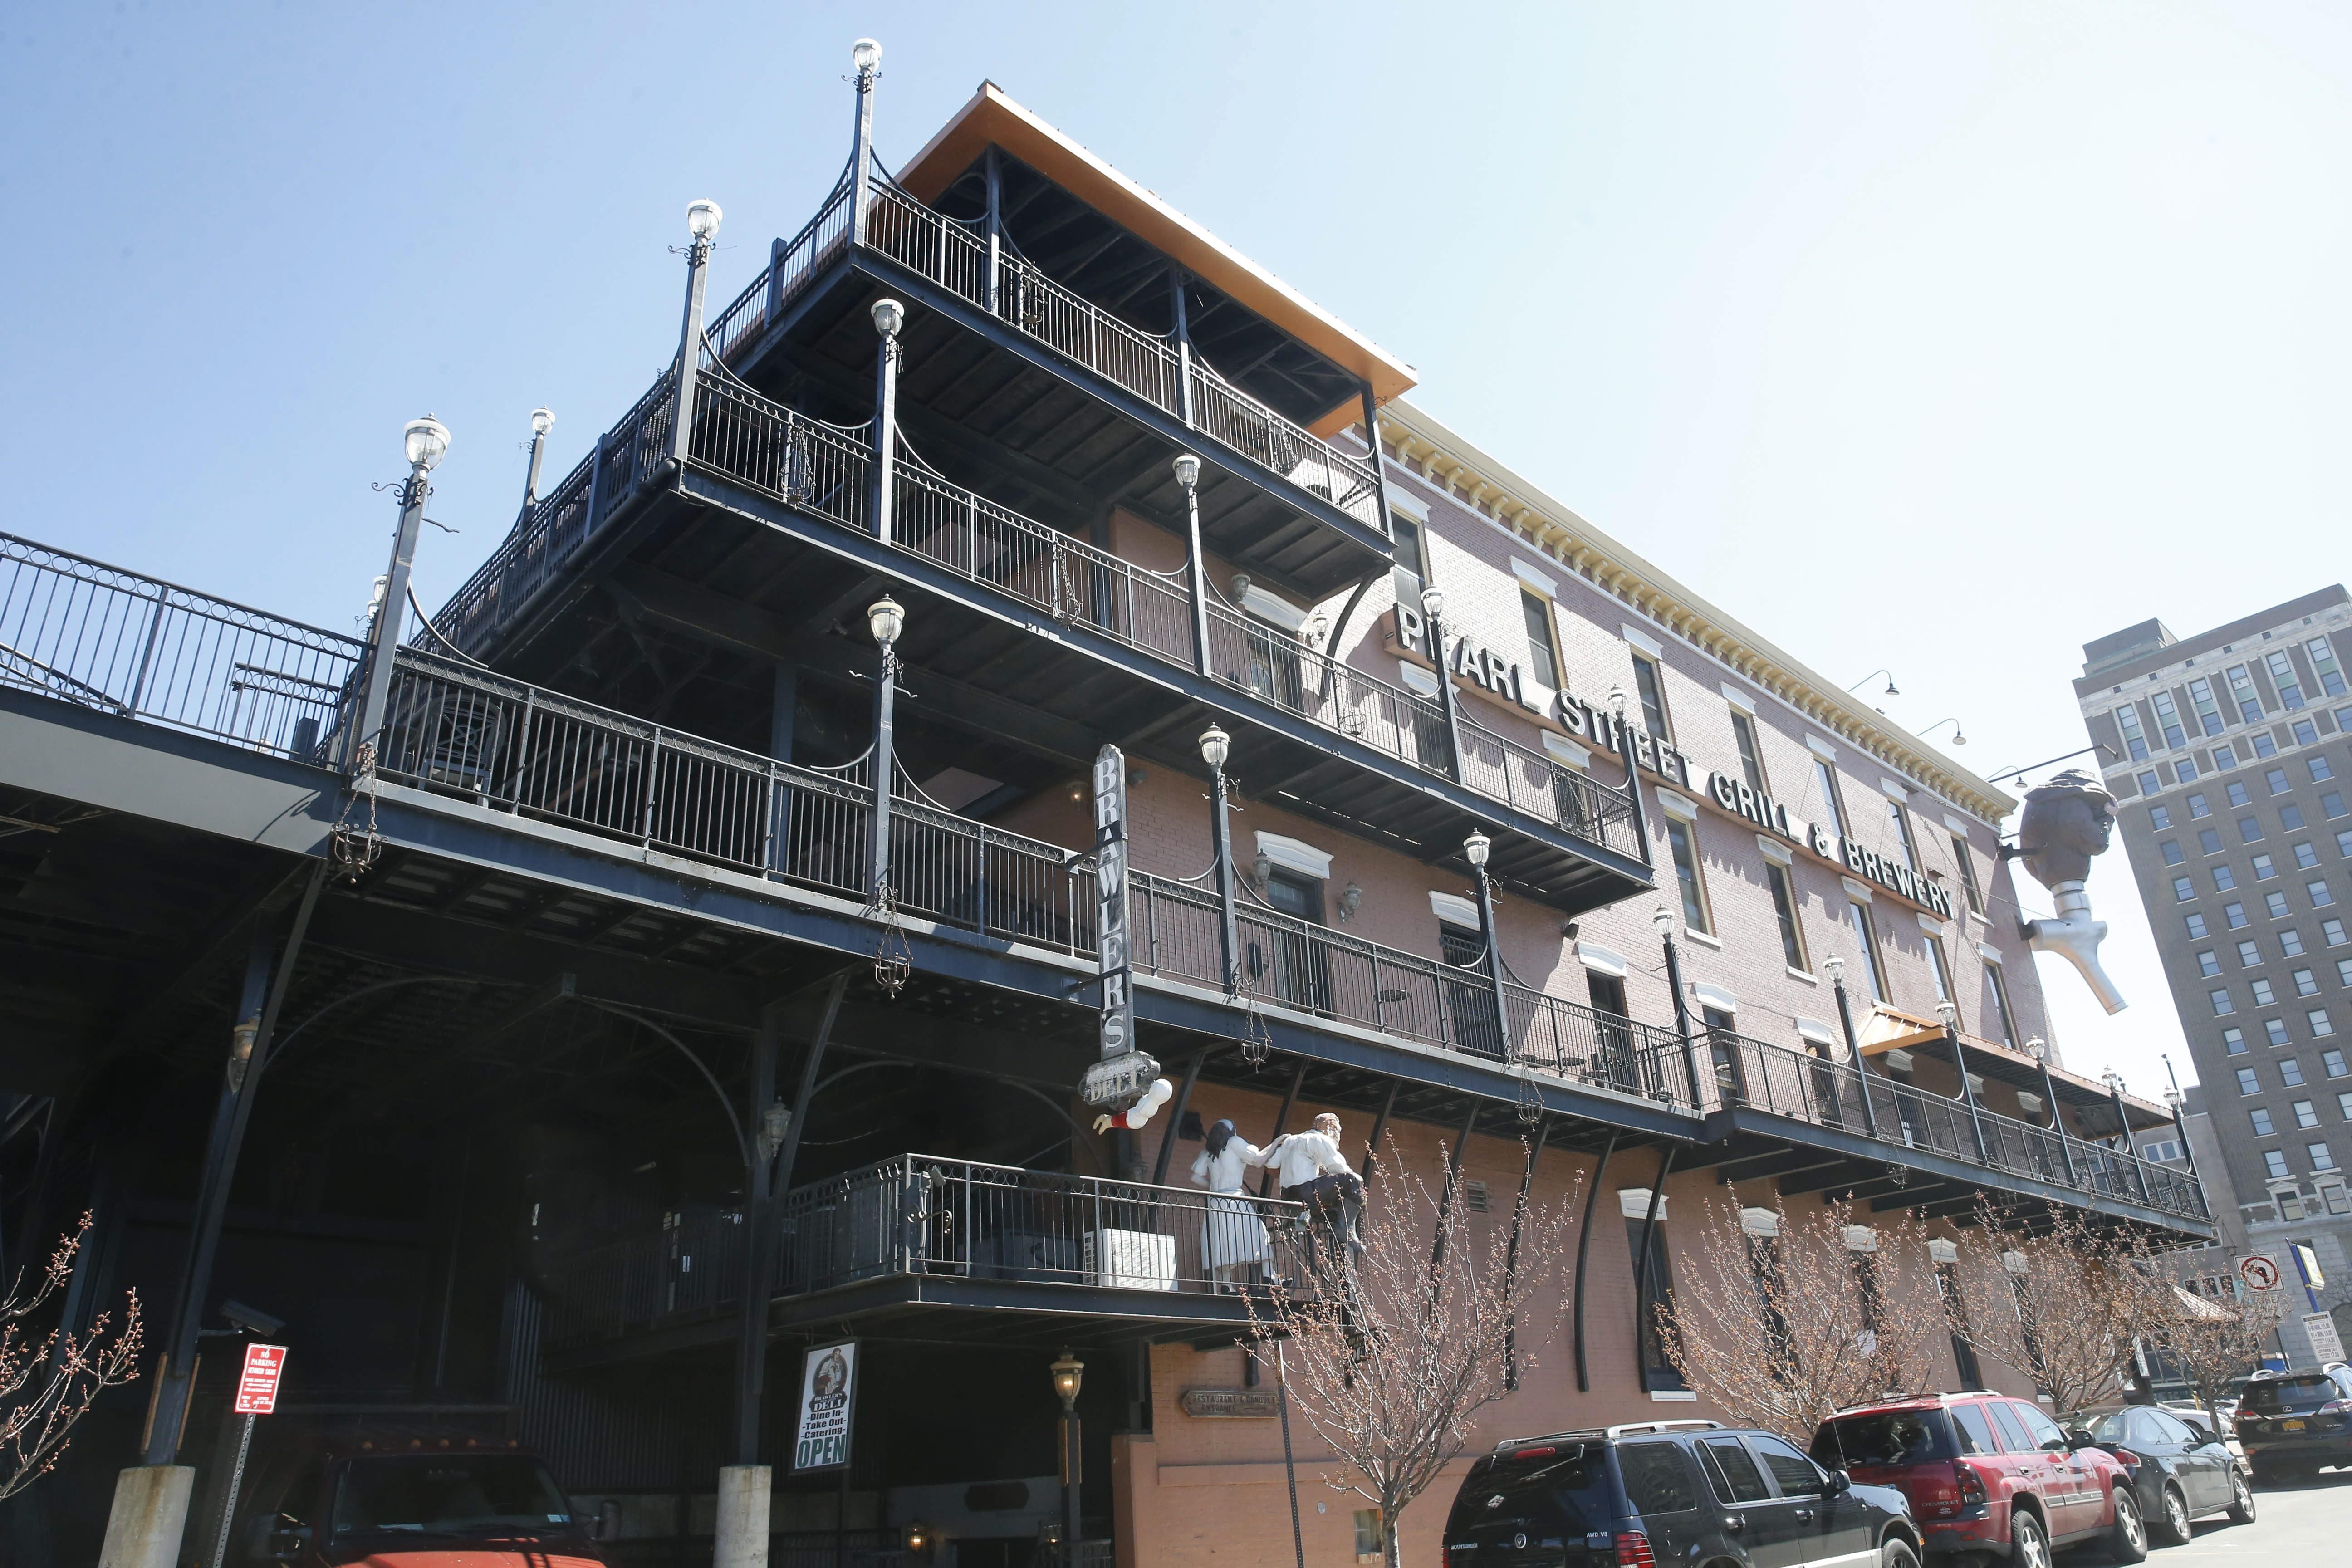 Thomas J. Krickovich was hanging by his hands from the railing on the balcony on the fourth floor of the Pearl Street Grill when he fell, hit the Brawlers sign below and then landed on the sidewalk.